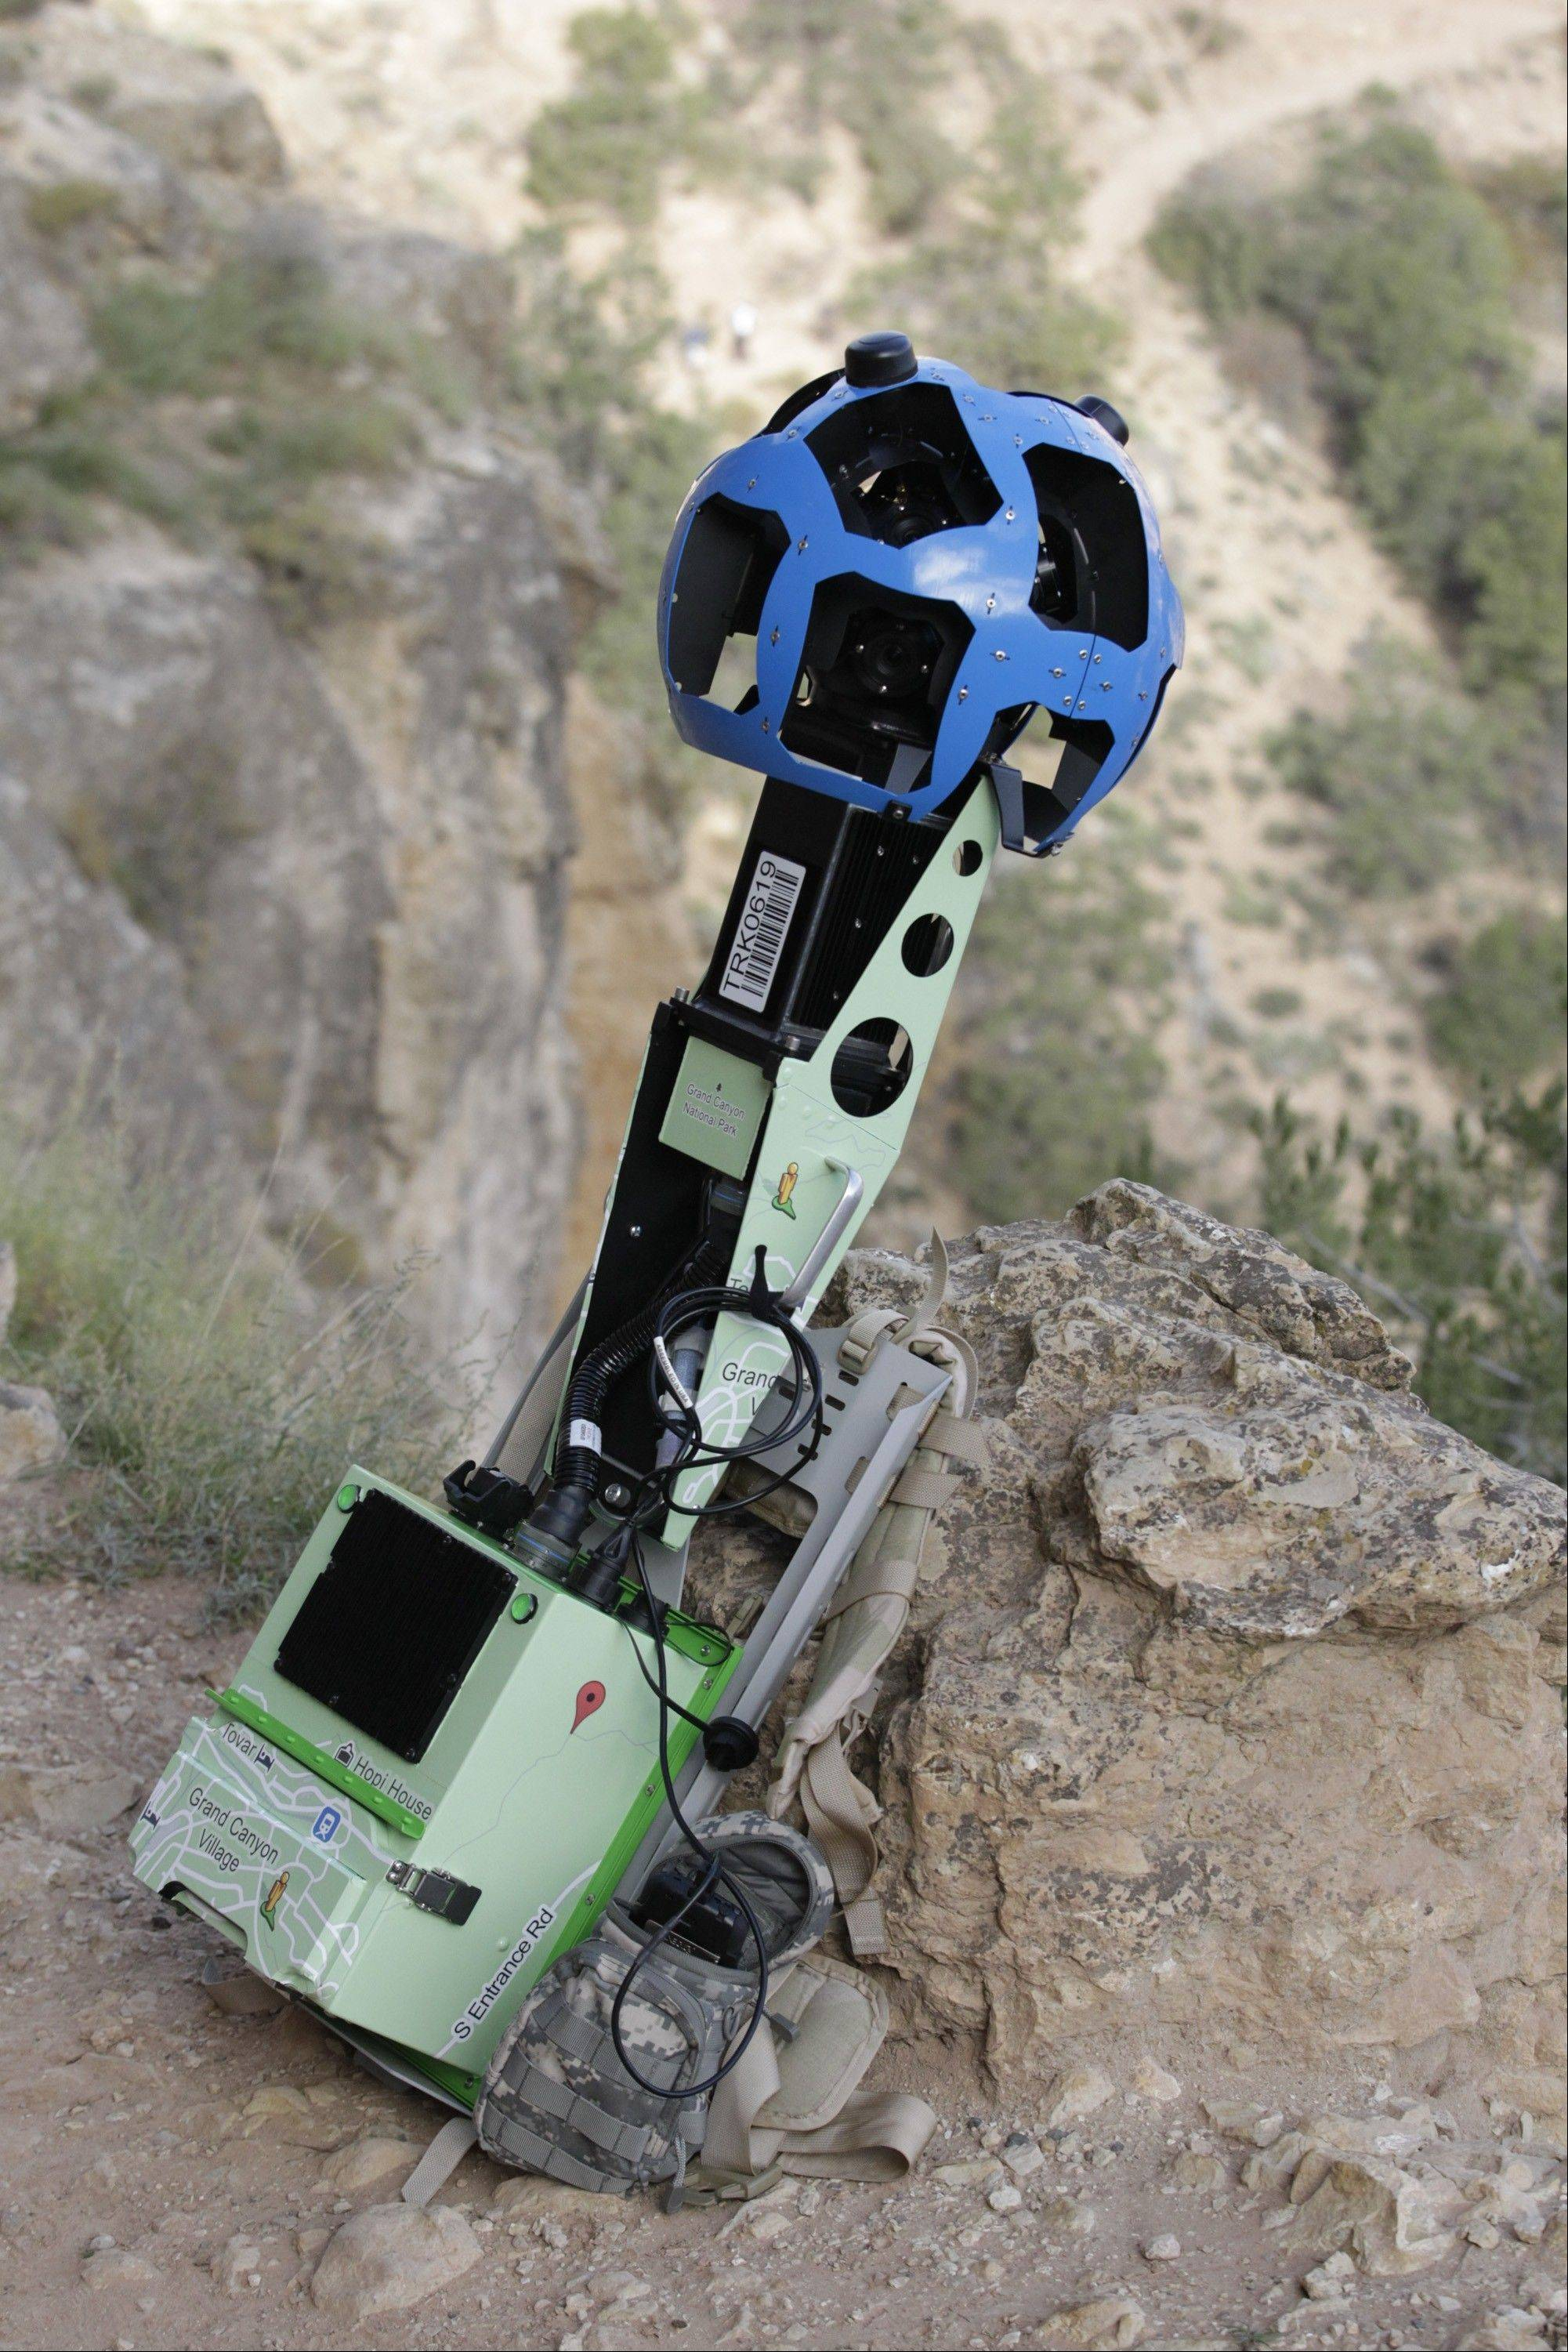 Google is using the Trekker, a nearly 40-pound, backpack-sized camera unit to showcase the Grand Canyon's most popular hiking trails on the South Rim and other off-road sites.